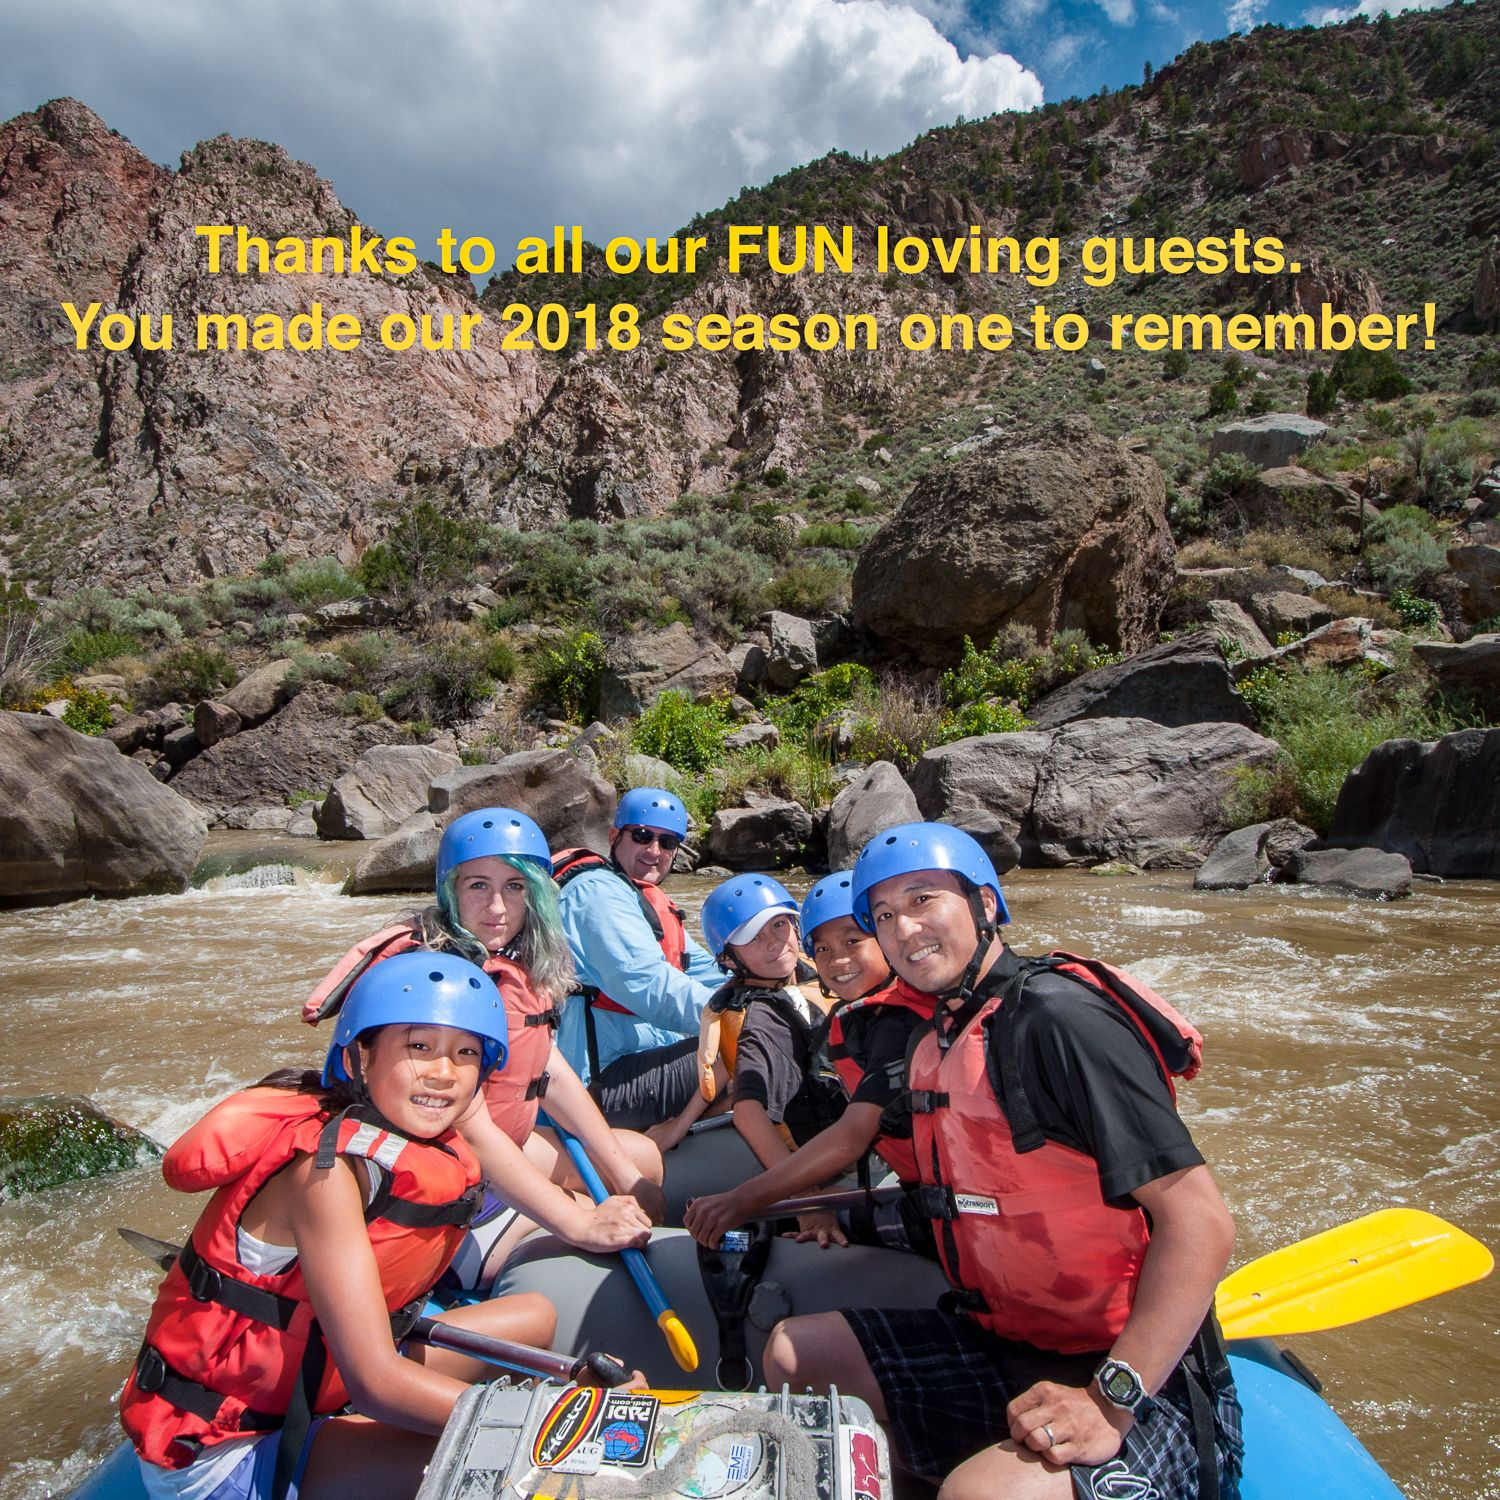 #newwaverafting has now concluded it's 38th year on the #riogrande. Thank You!